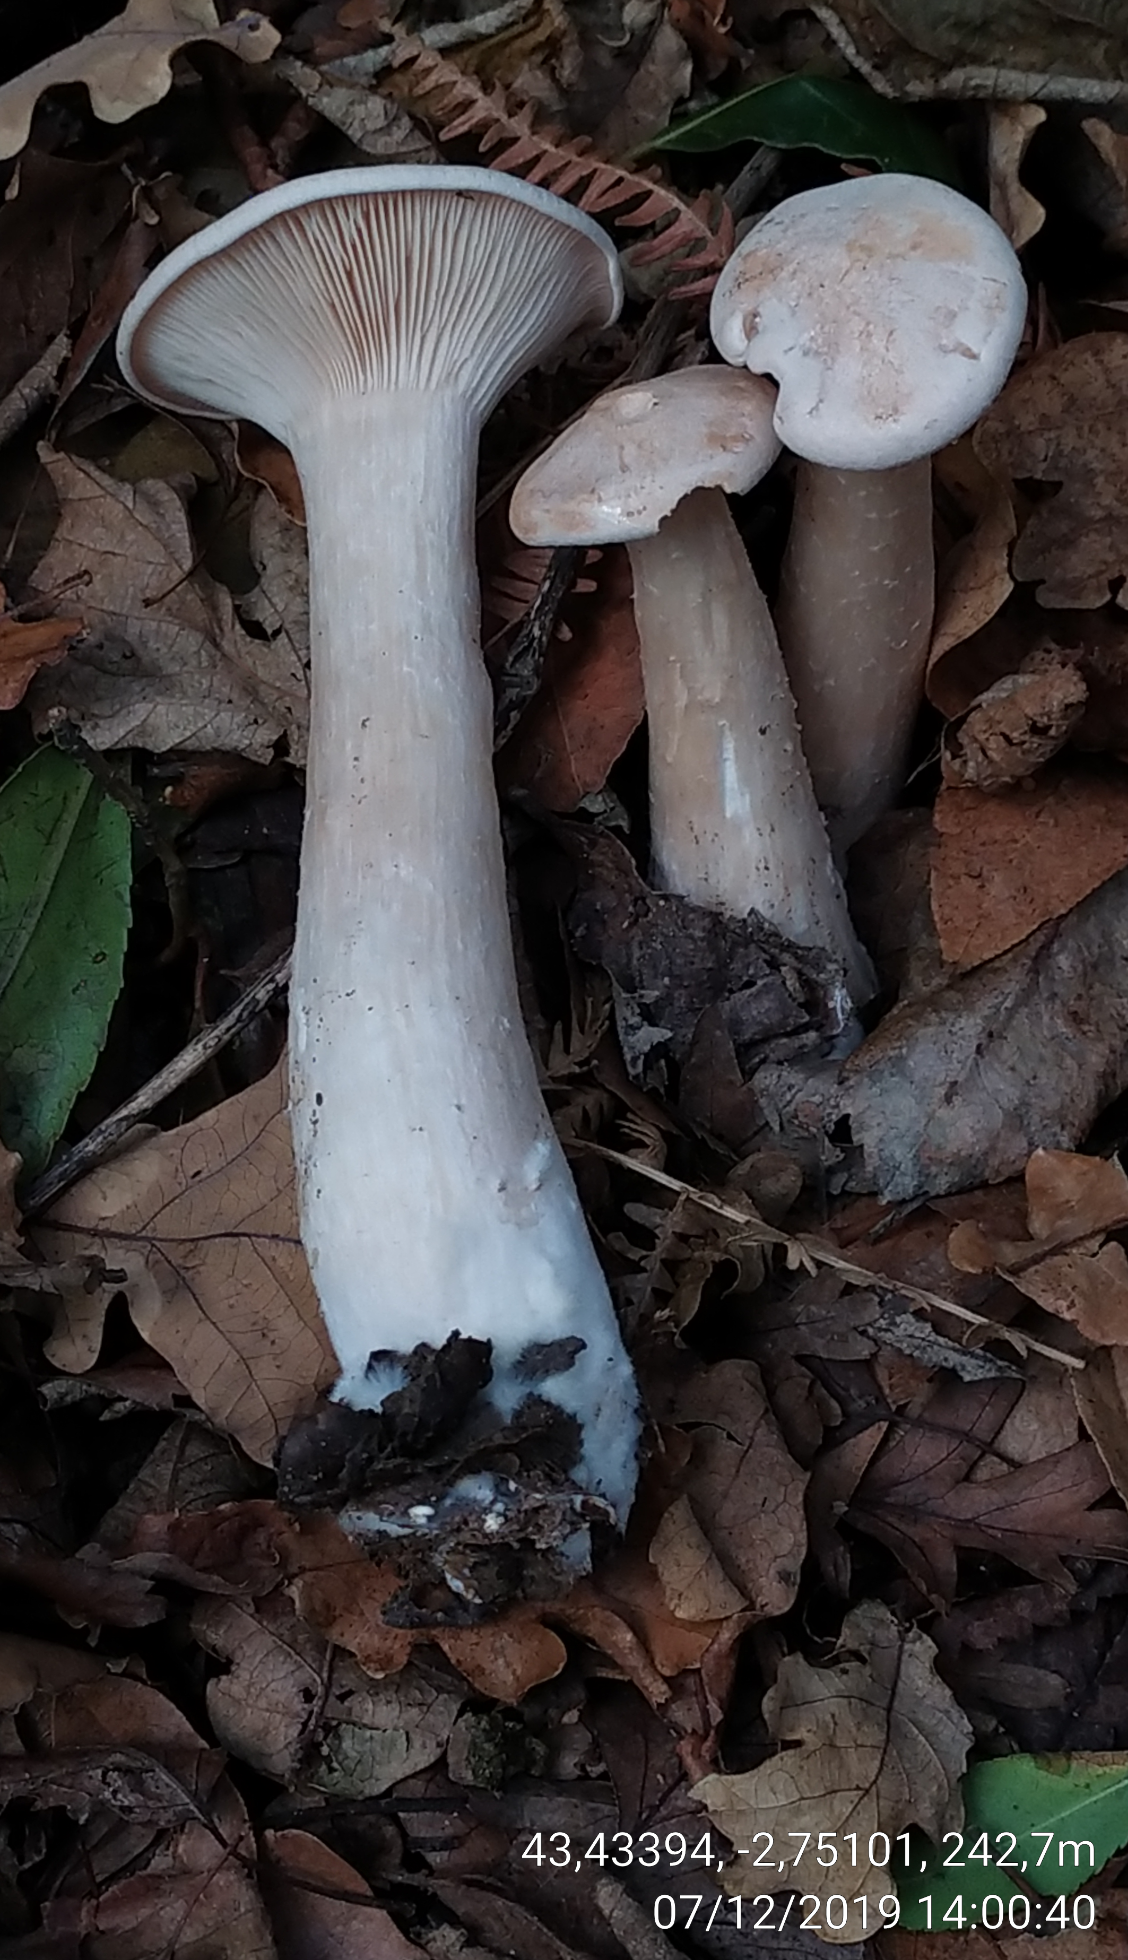 Clitocybegeotropa_20191207_140040.png